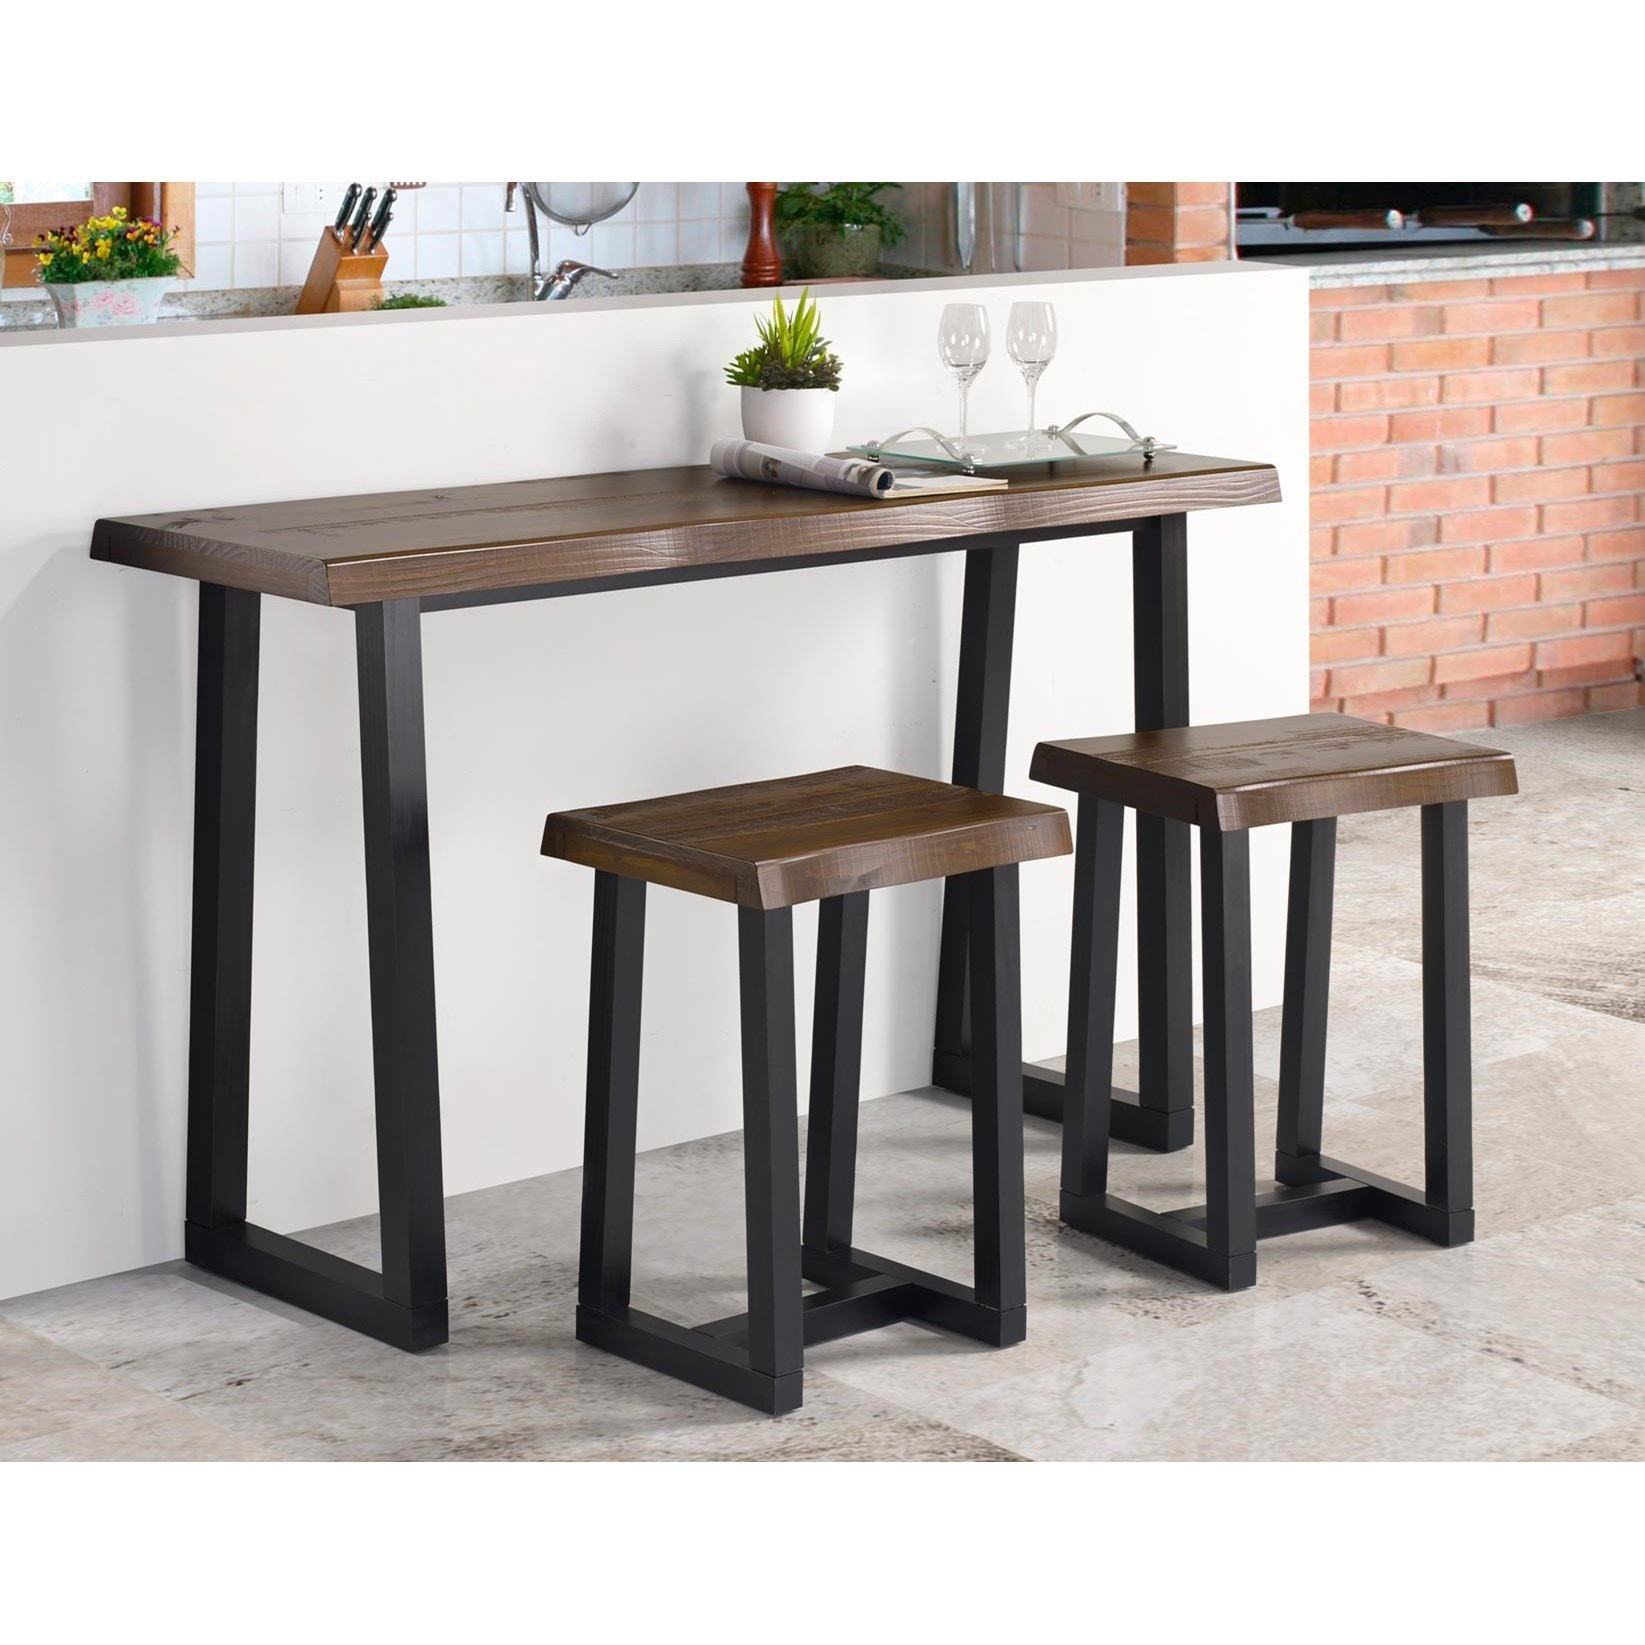 Janine Janine 3-Piece Bar Table Set by Steve Silver at Morris Home